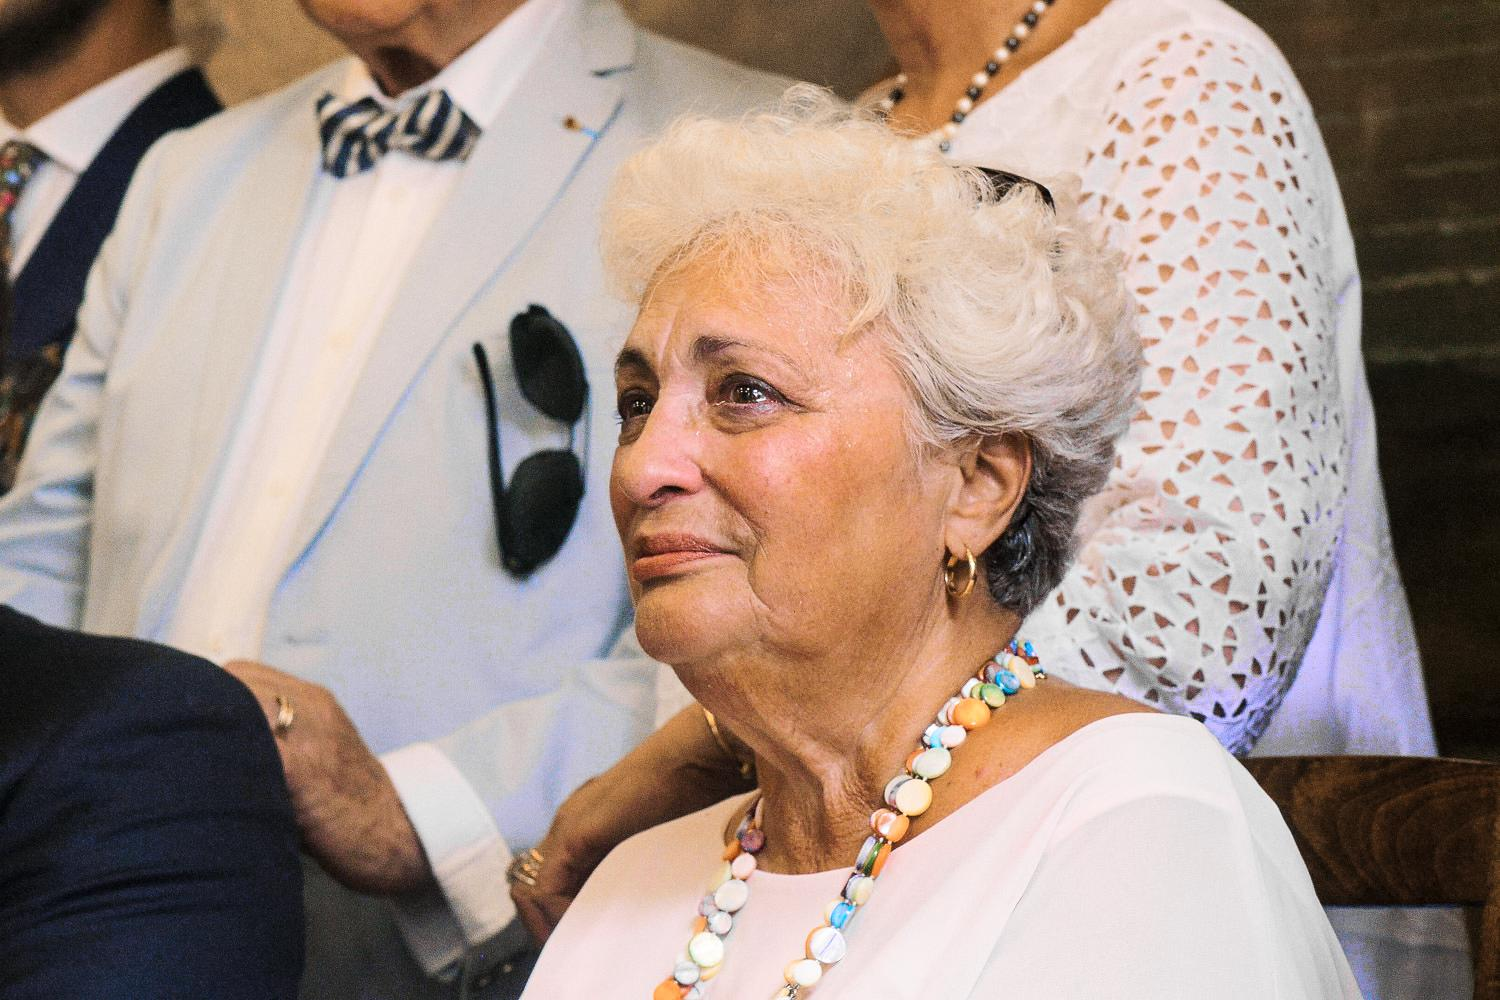 Emotional mother of the groom sheds a tear during wedding ceremony